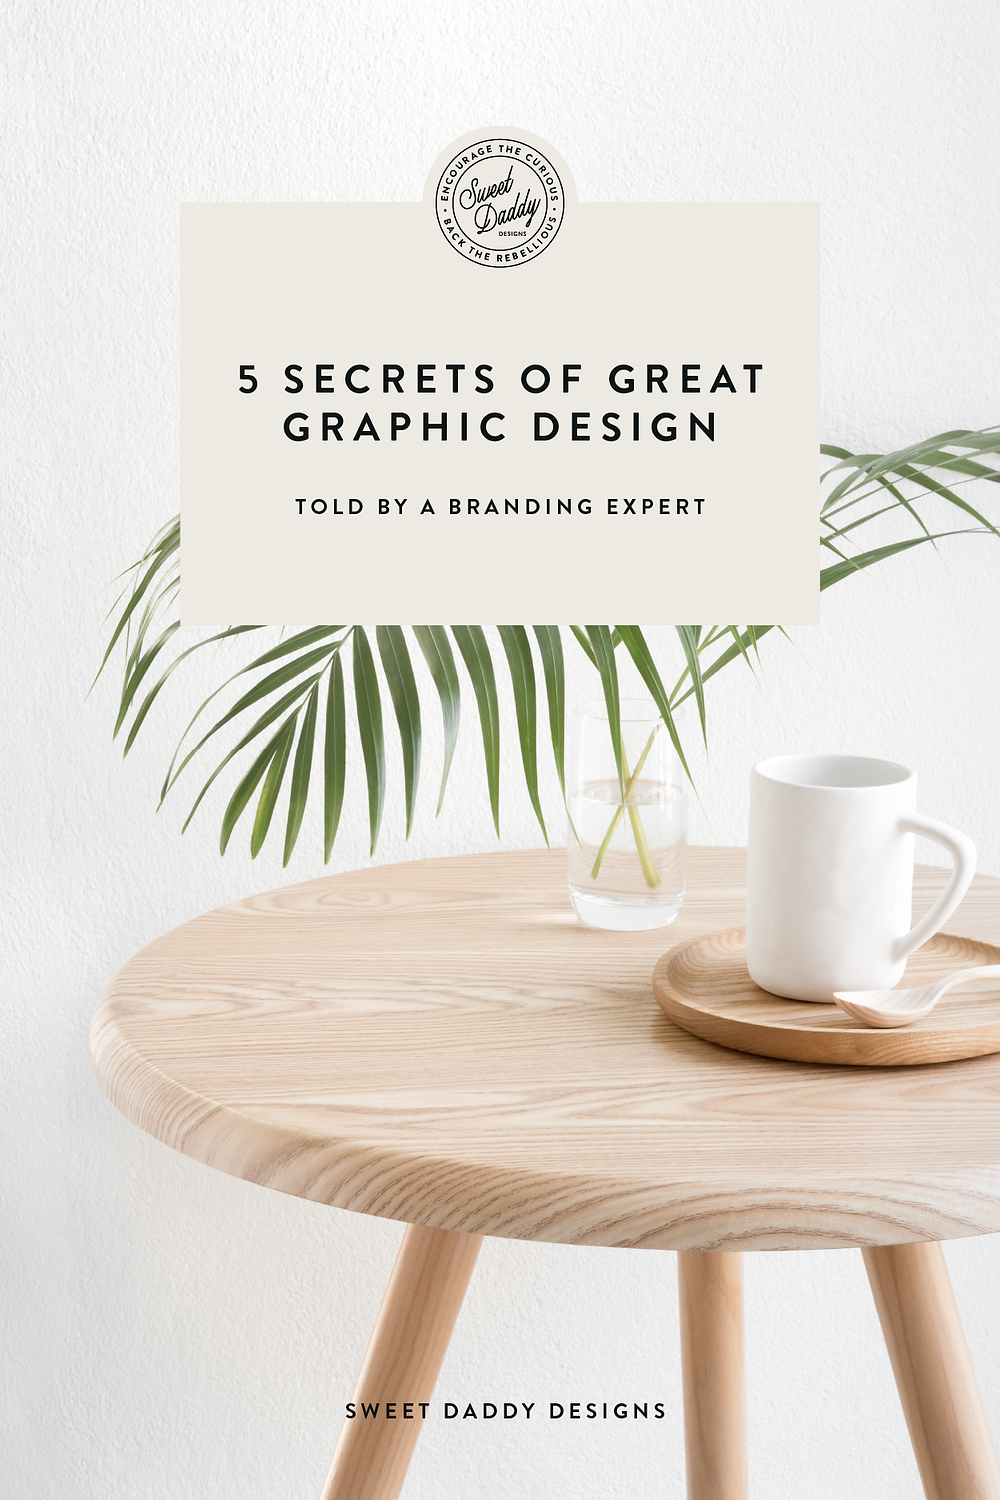 5 Secrets of Great Graphic Design